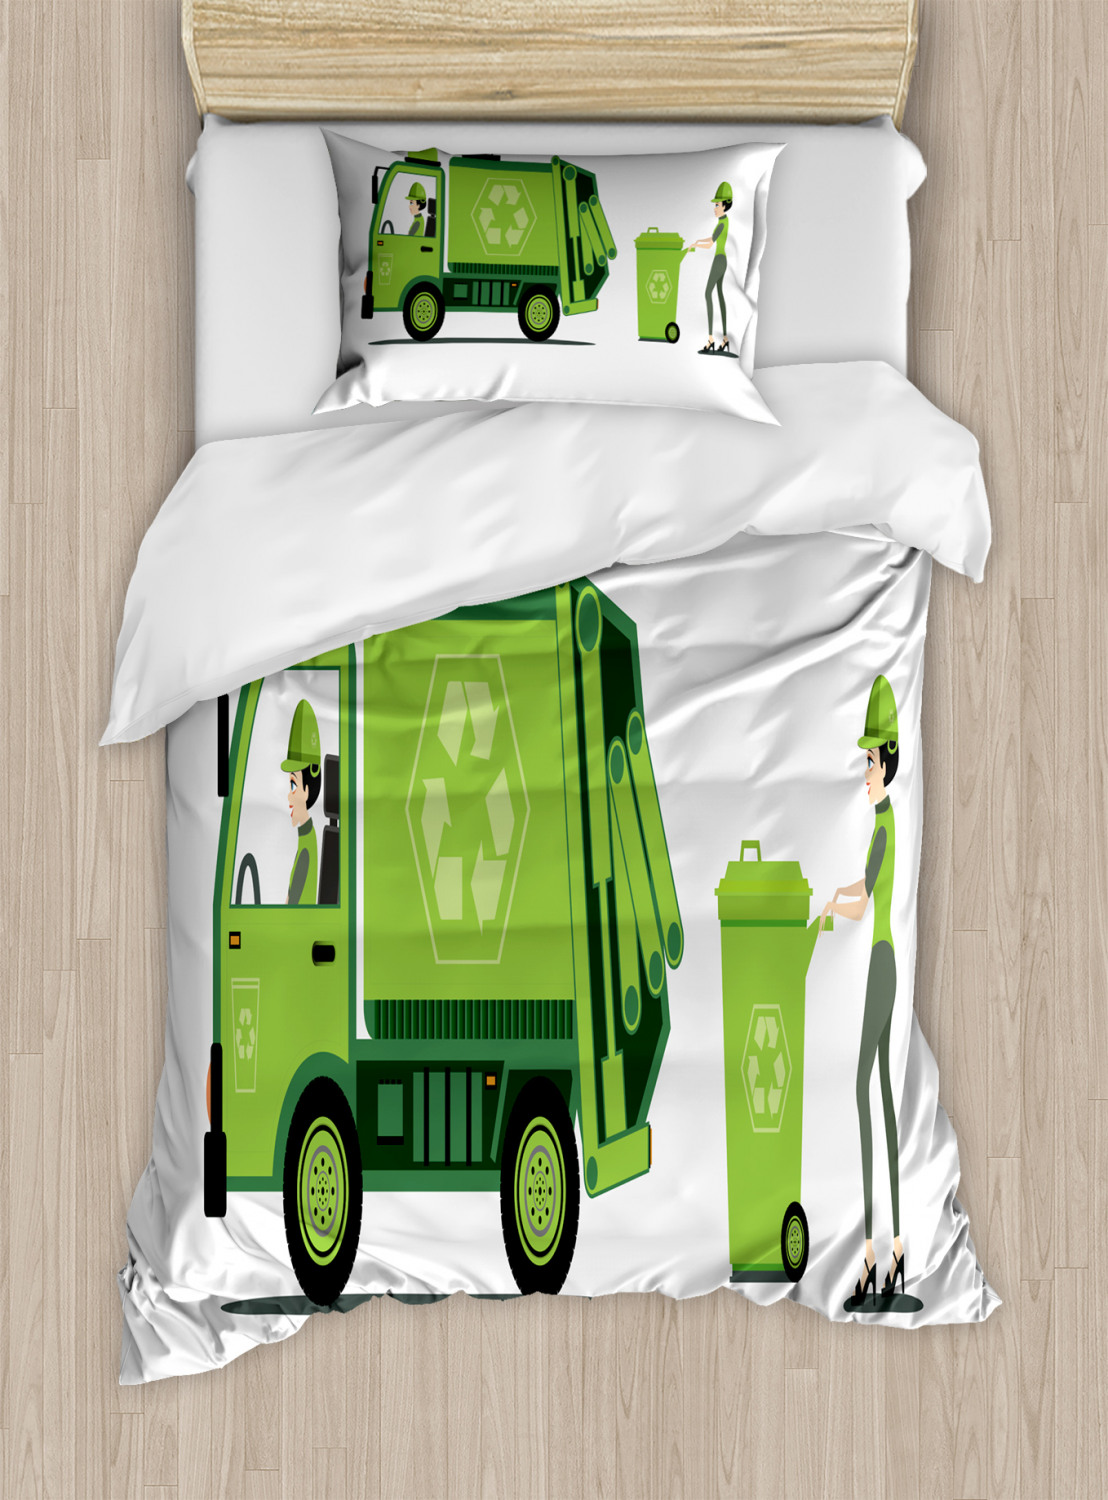 Garbage Truck Duvet Cover Set Trash Picking Done By Staff Green Monochrome Recycling Themed Cartoon Decorative Bedding Set With Pillow Shams Apple Green White By Ambesonne Walmart Com Walmart Com